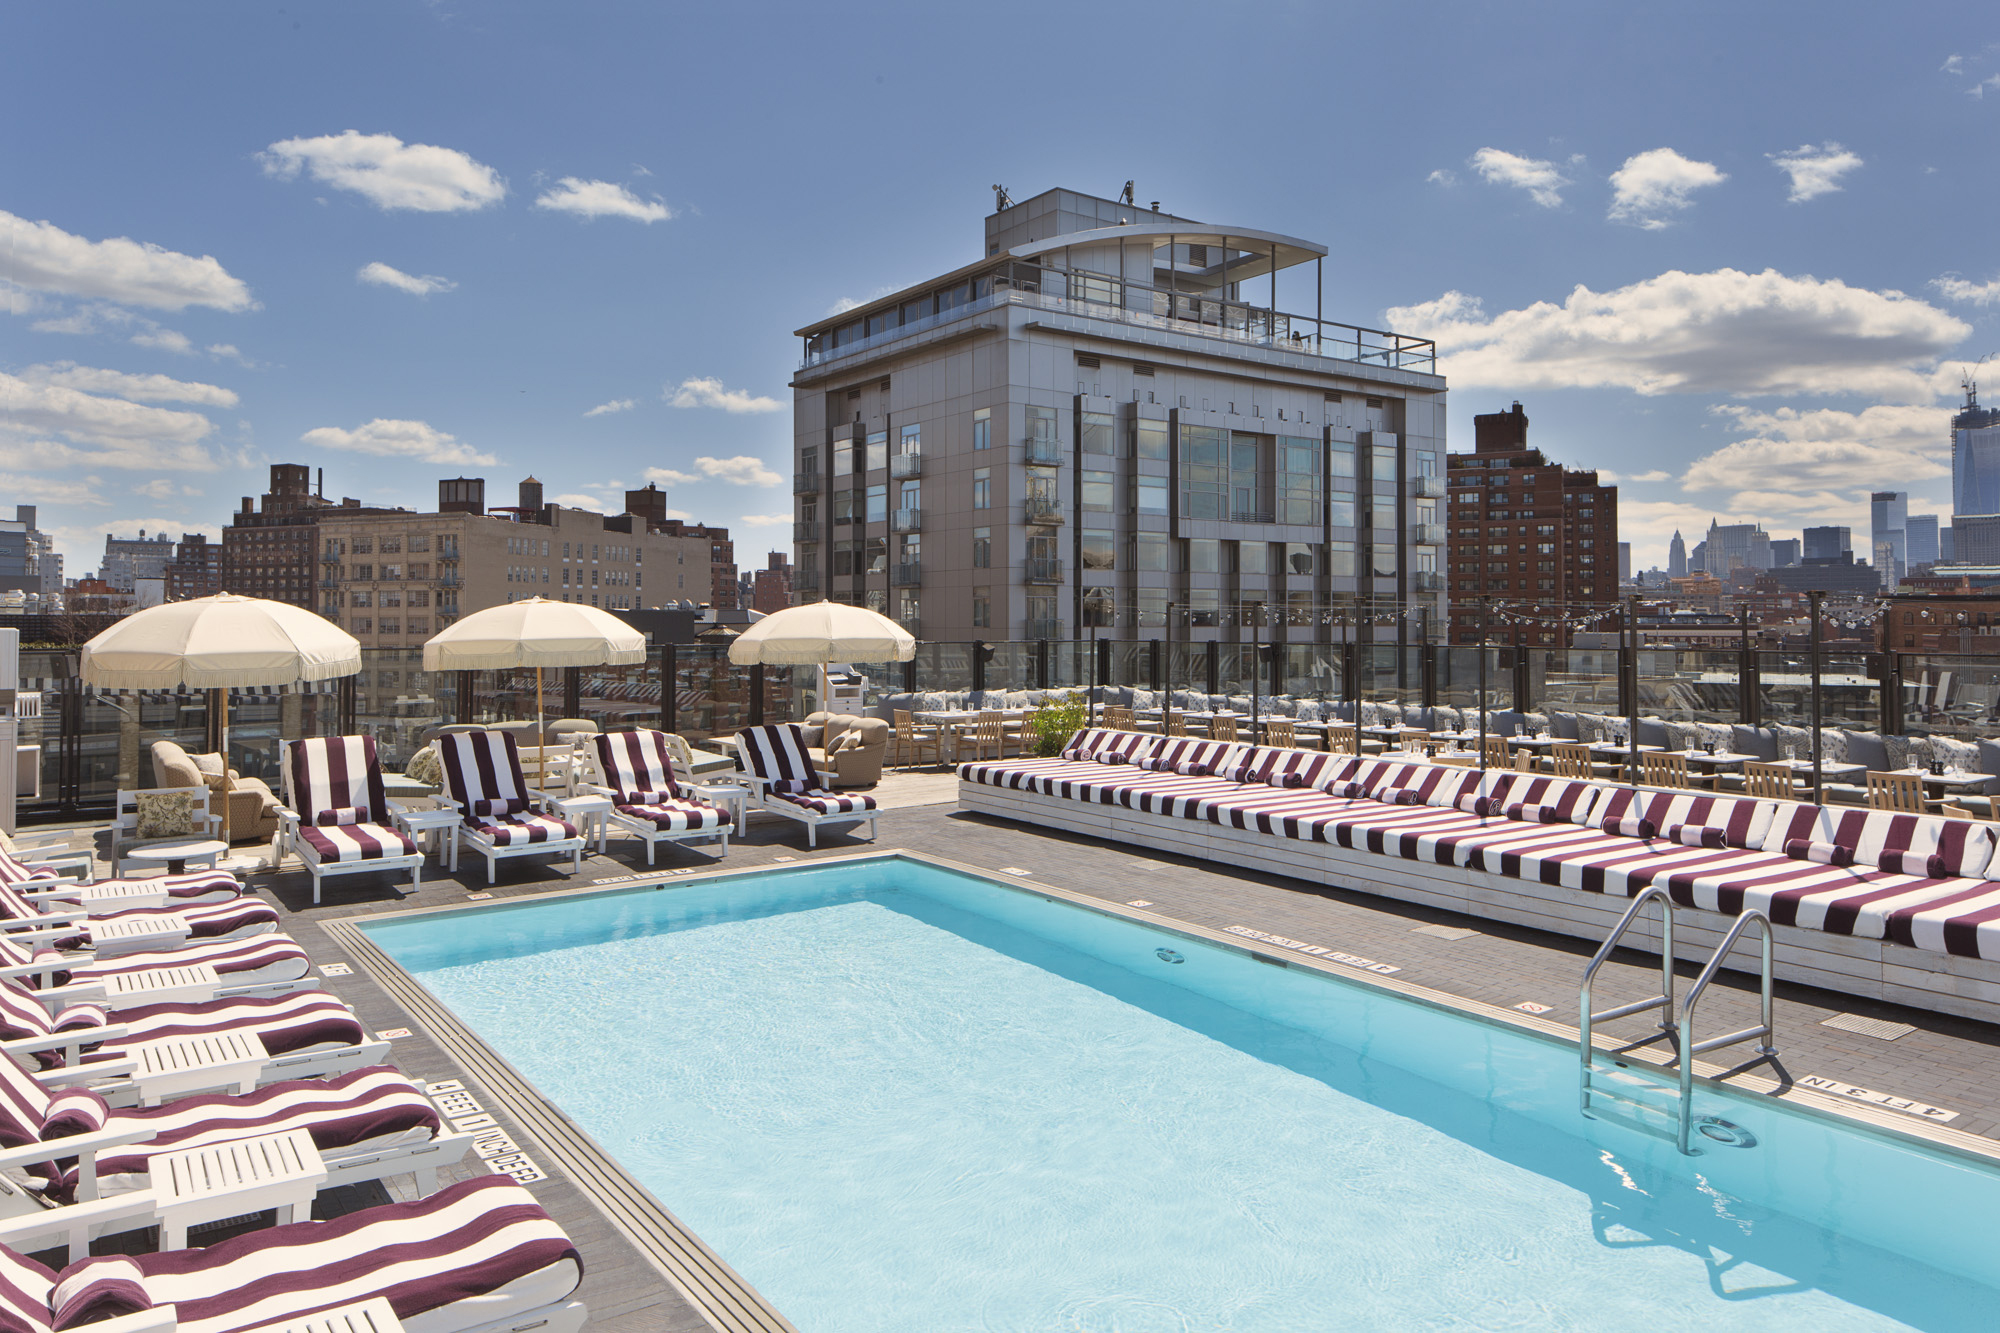 Best NYC Hotels With Jacuzzis In Rooms Including Rooftop Spas - Rooms with pools